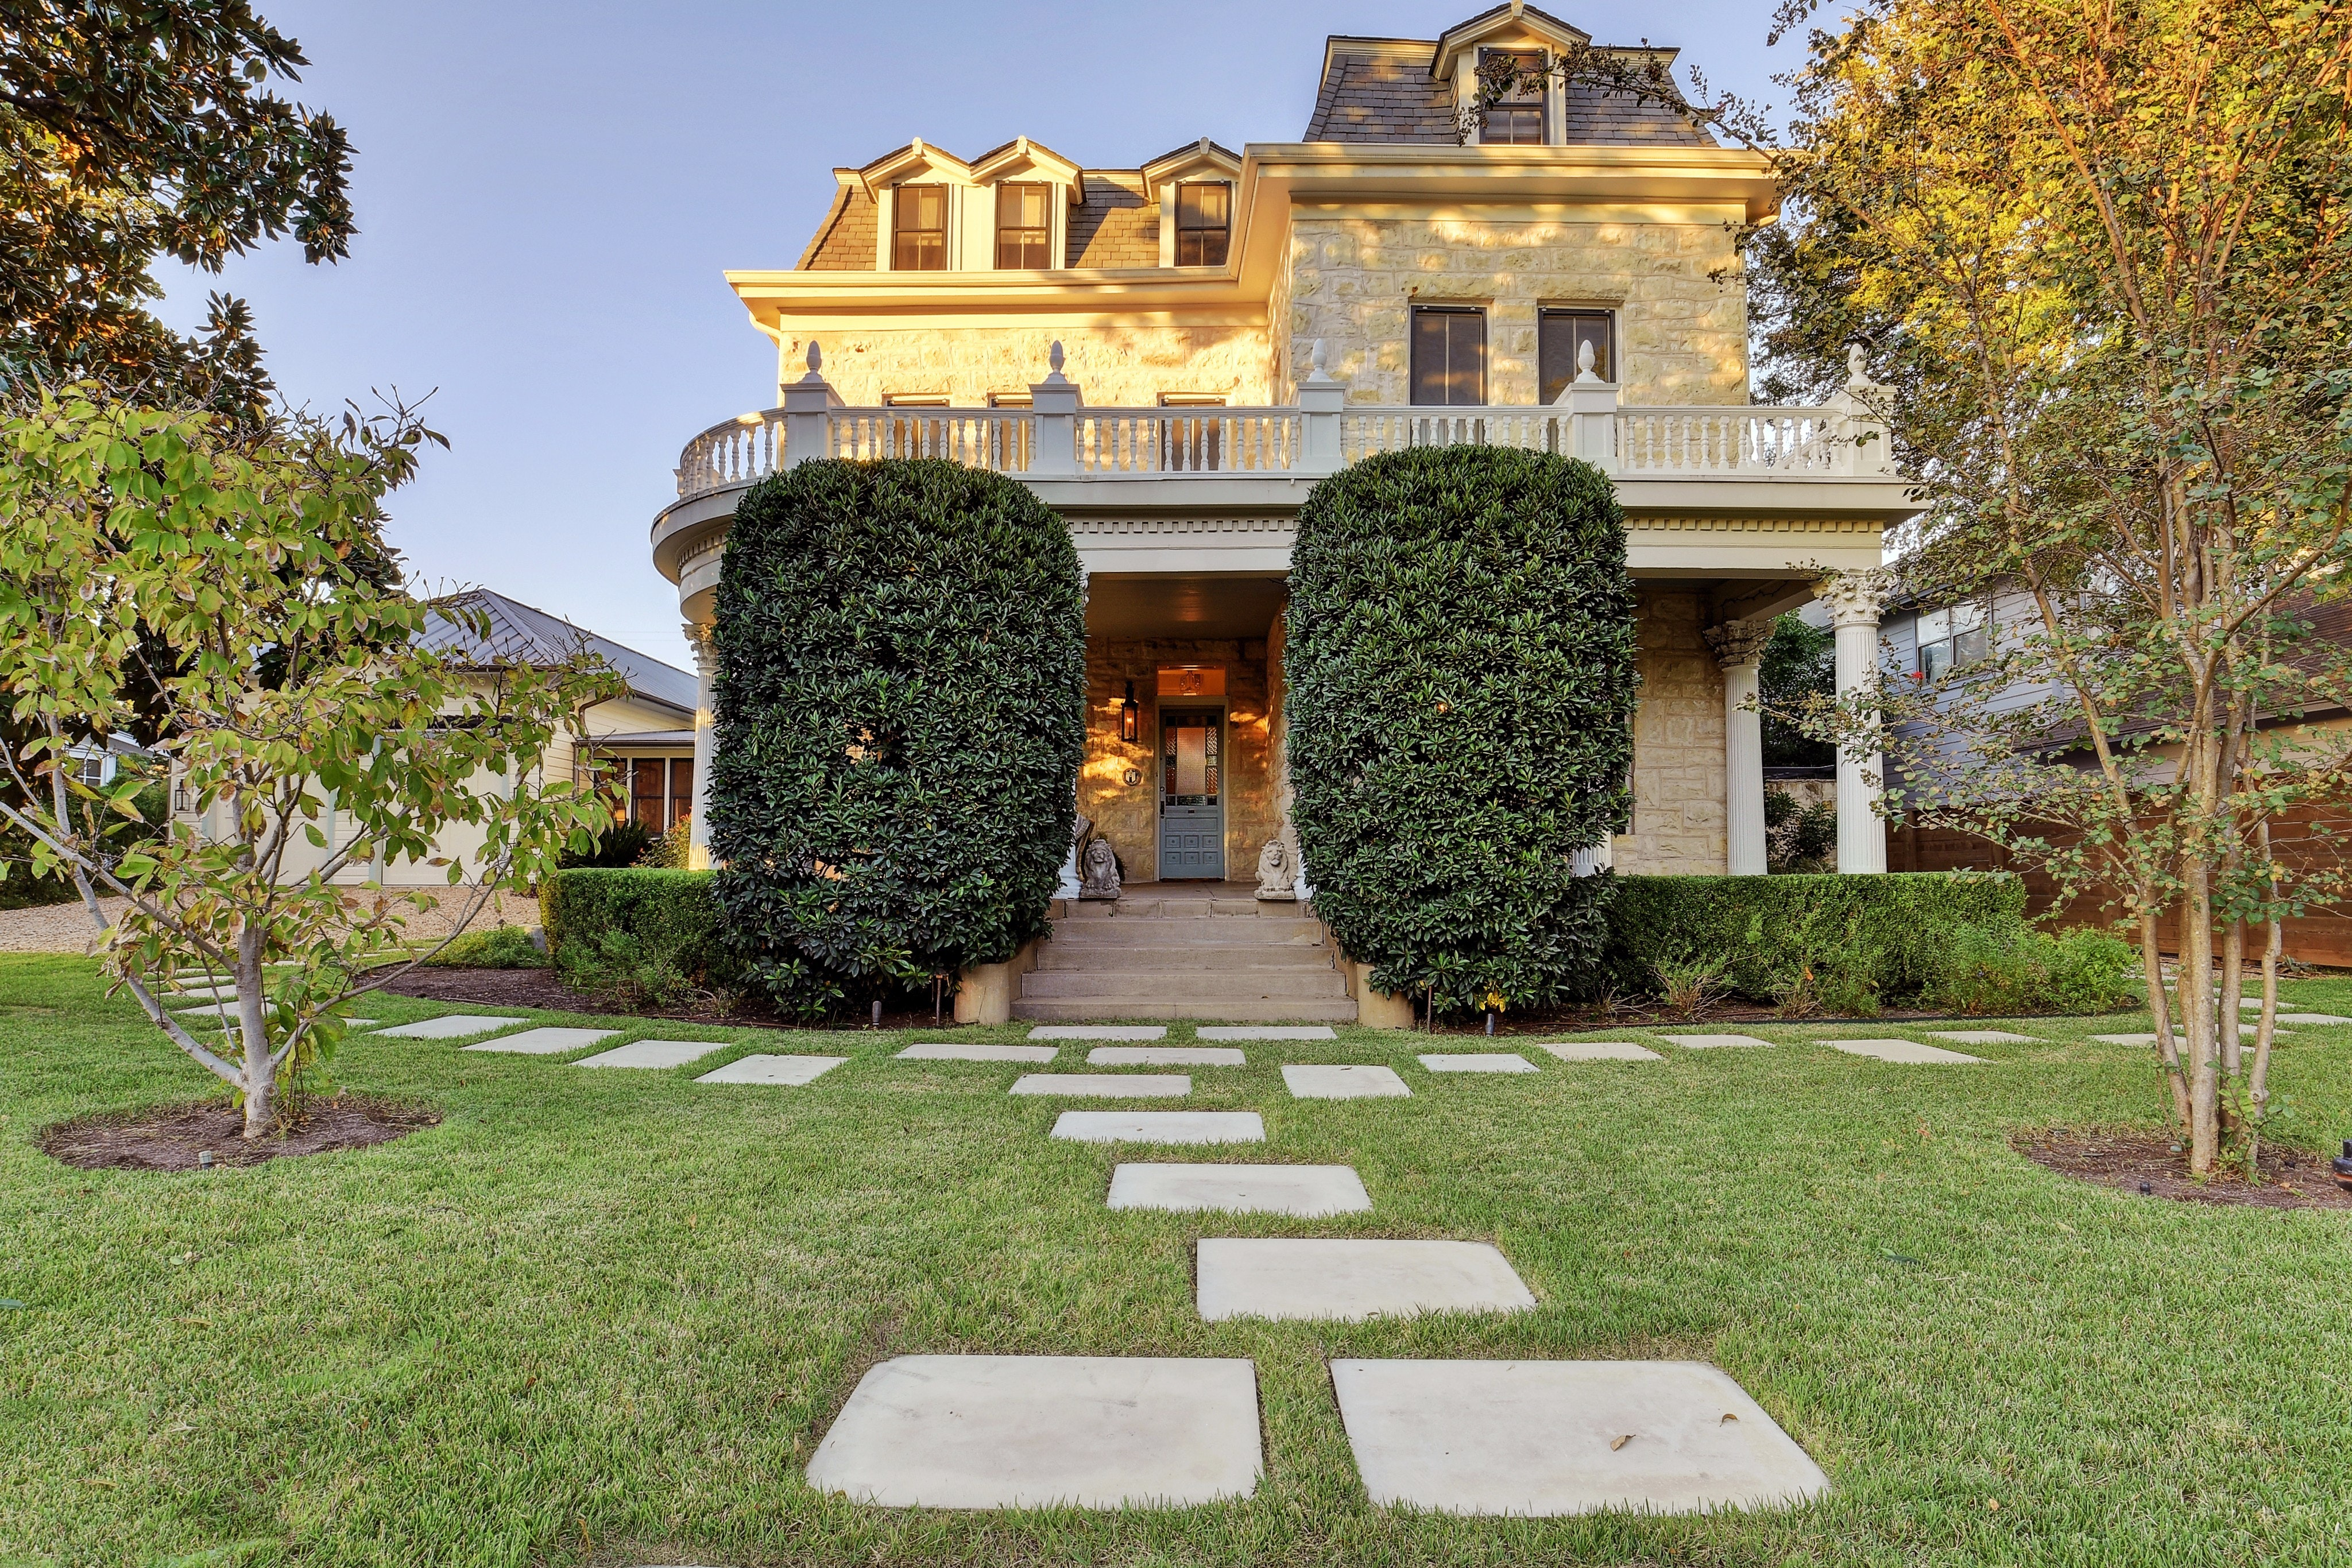 Cost to build a new house in austin - Sublime Historic Clarksville Home Shows Off Austin Design Old And New